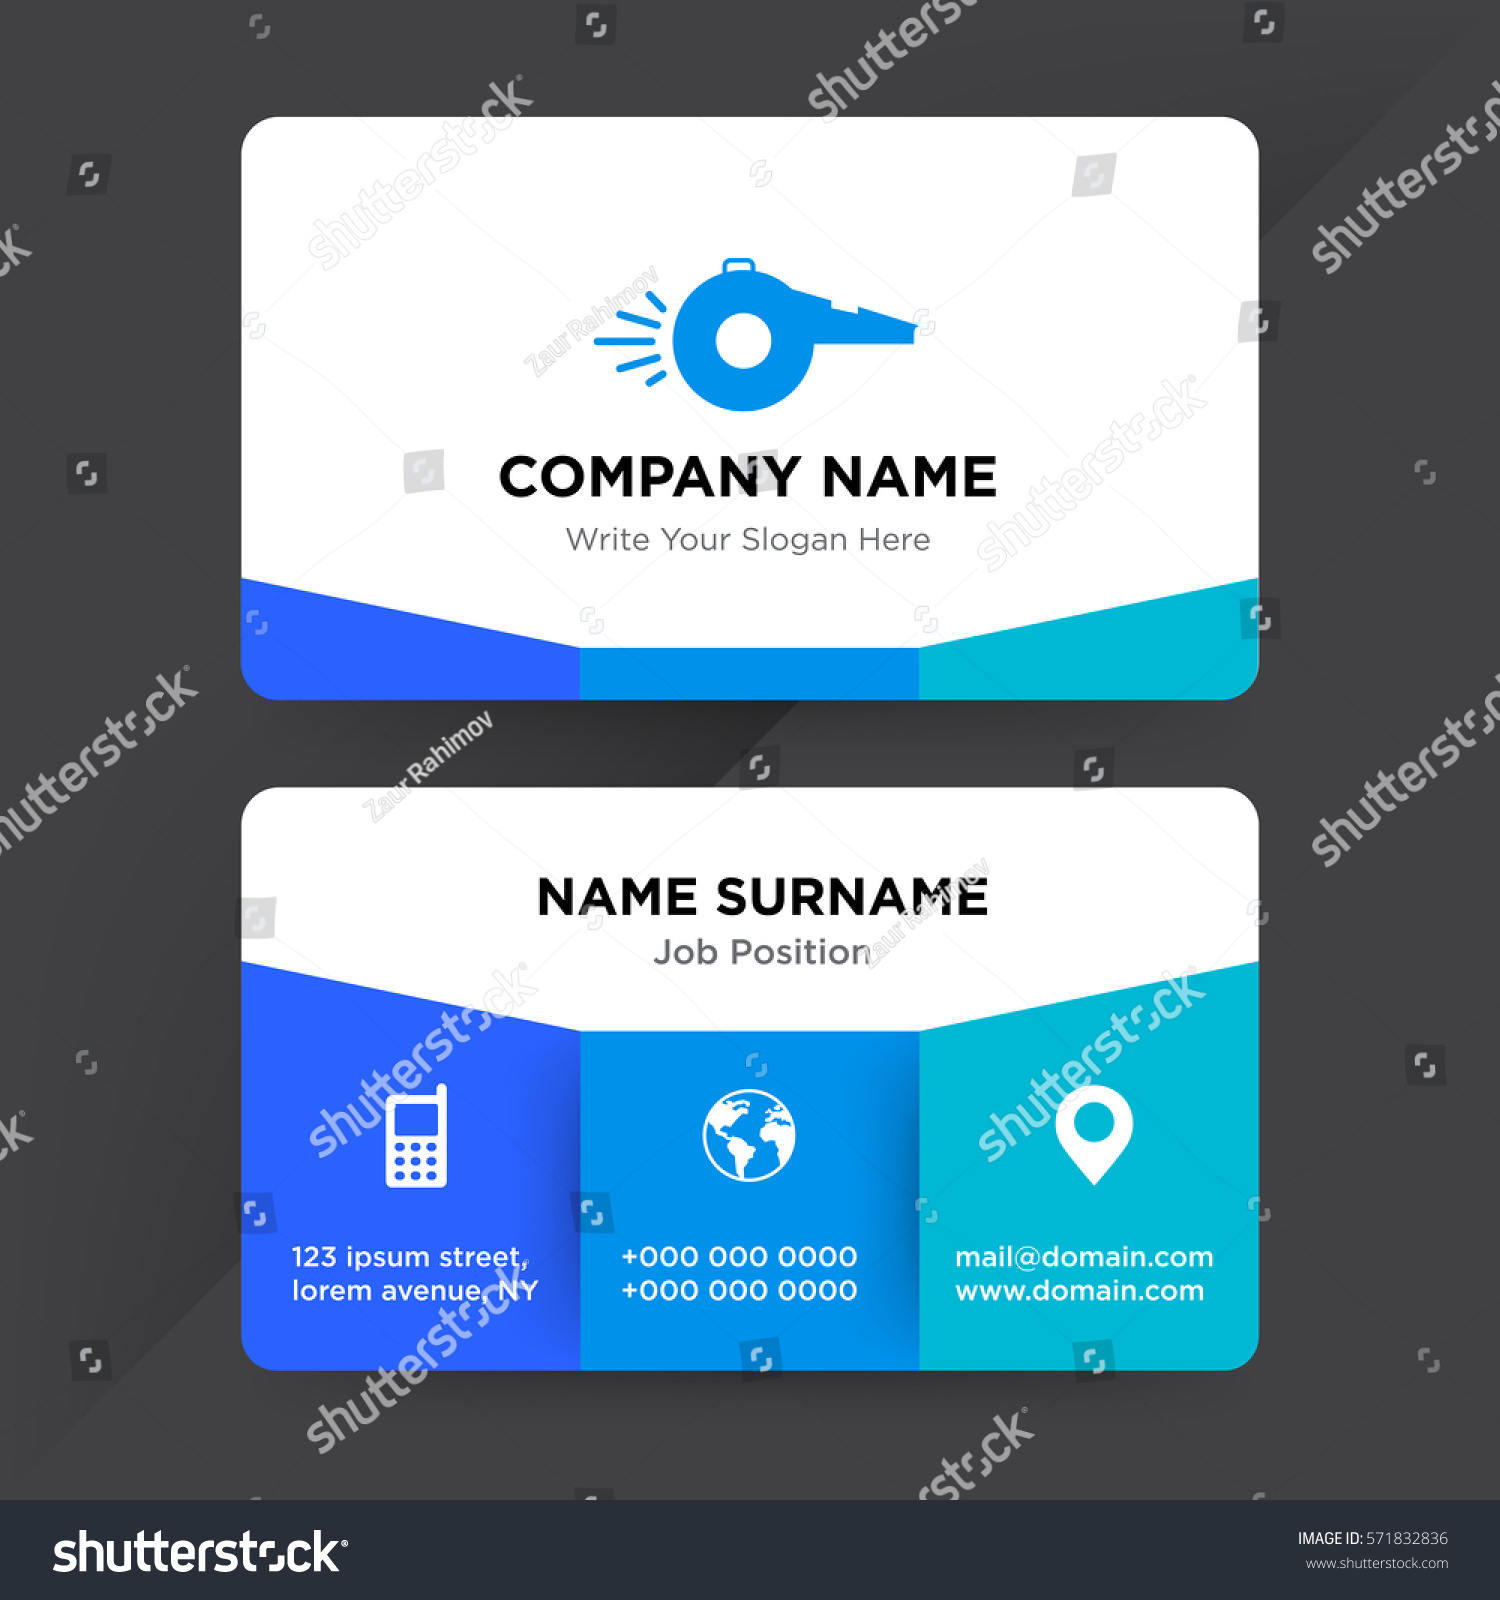 Spot uv business cards wiki gallery card design and card template business cards wiki size image collections card design and card spot uv business cards wiki gallery reheart Gallery